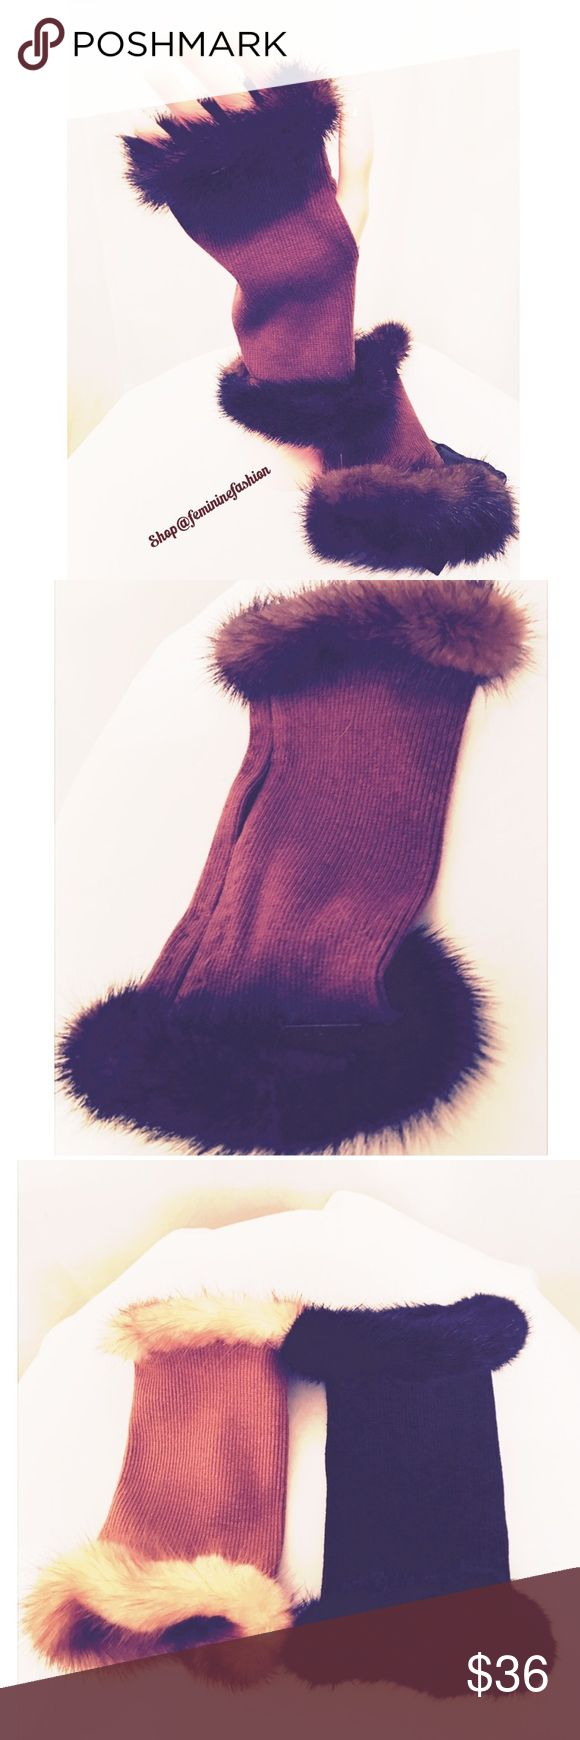 Brown Mink Trimmed Fingerless Gloves Glamorous Brown Mink Trimmed Fingerless Gloves. Glove fabric is finely ribbed and has some stretch. Also available in black or camel in this closet. Truly elegant🌹 Dana Stein Accessories Gloves & Mittens